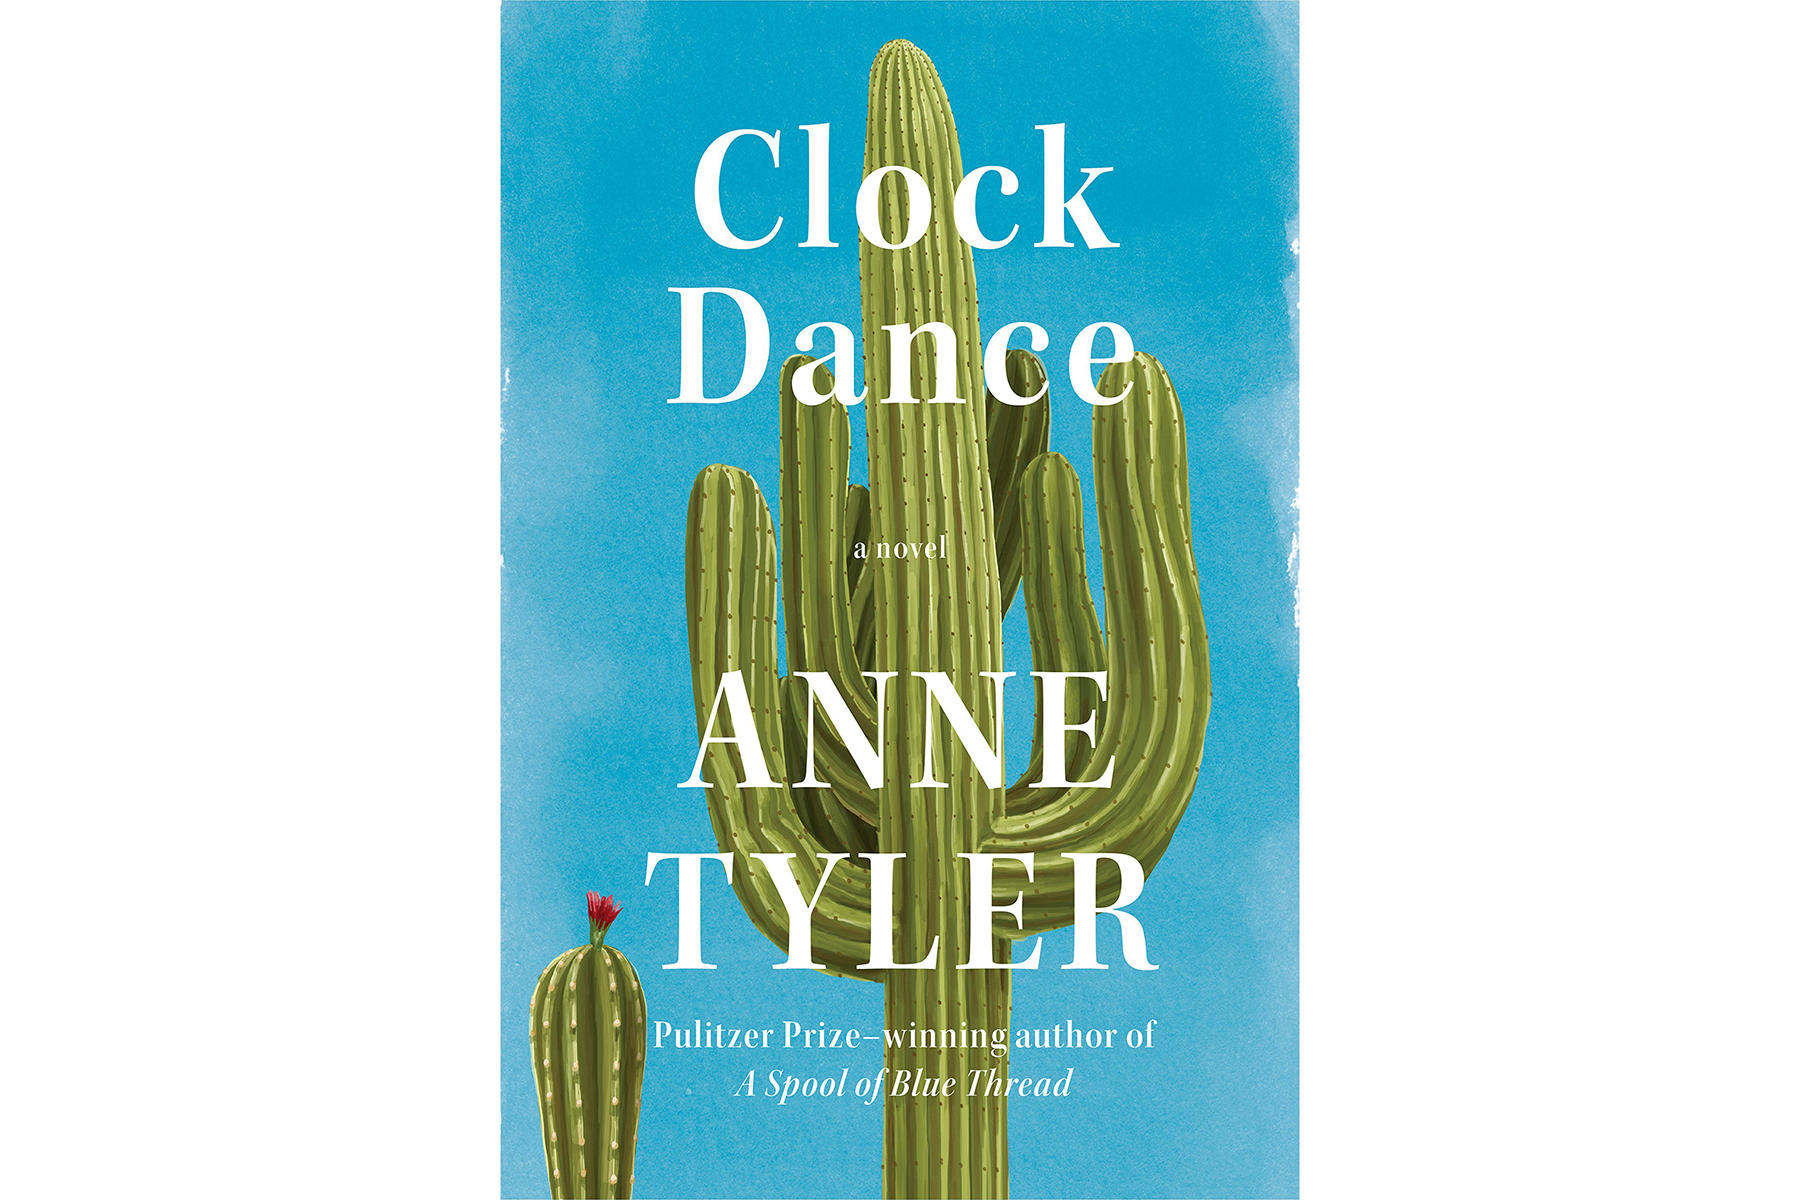 Clock Dance, by Anne Tyler